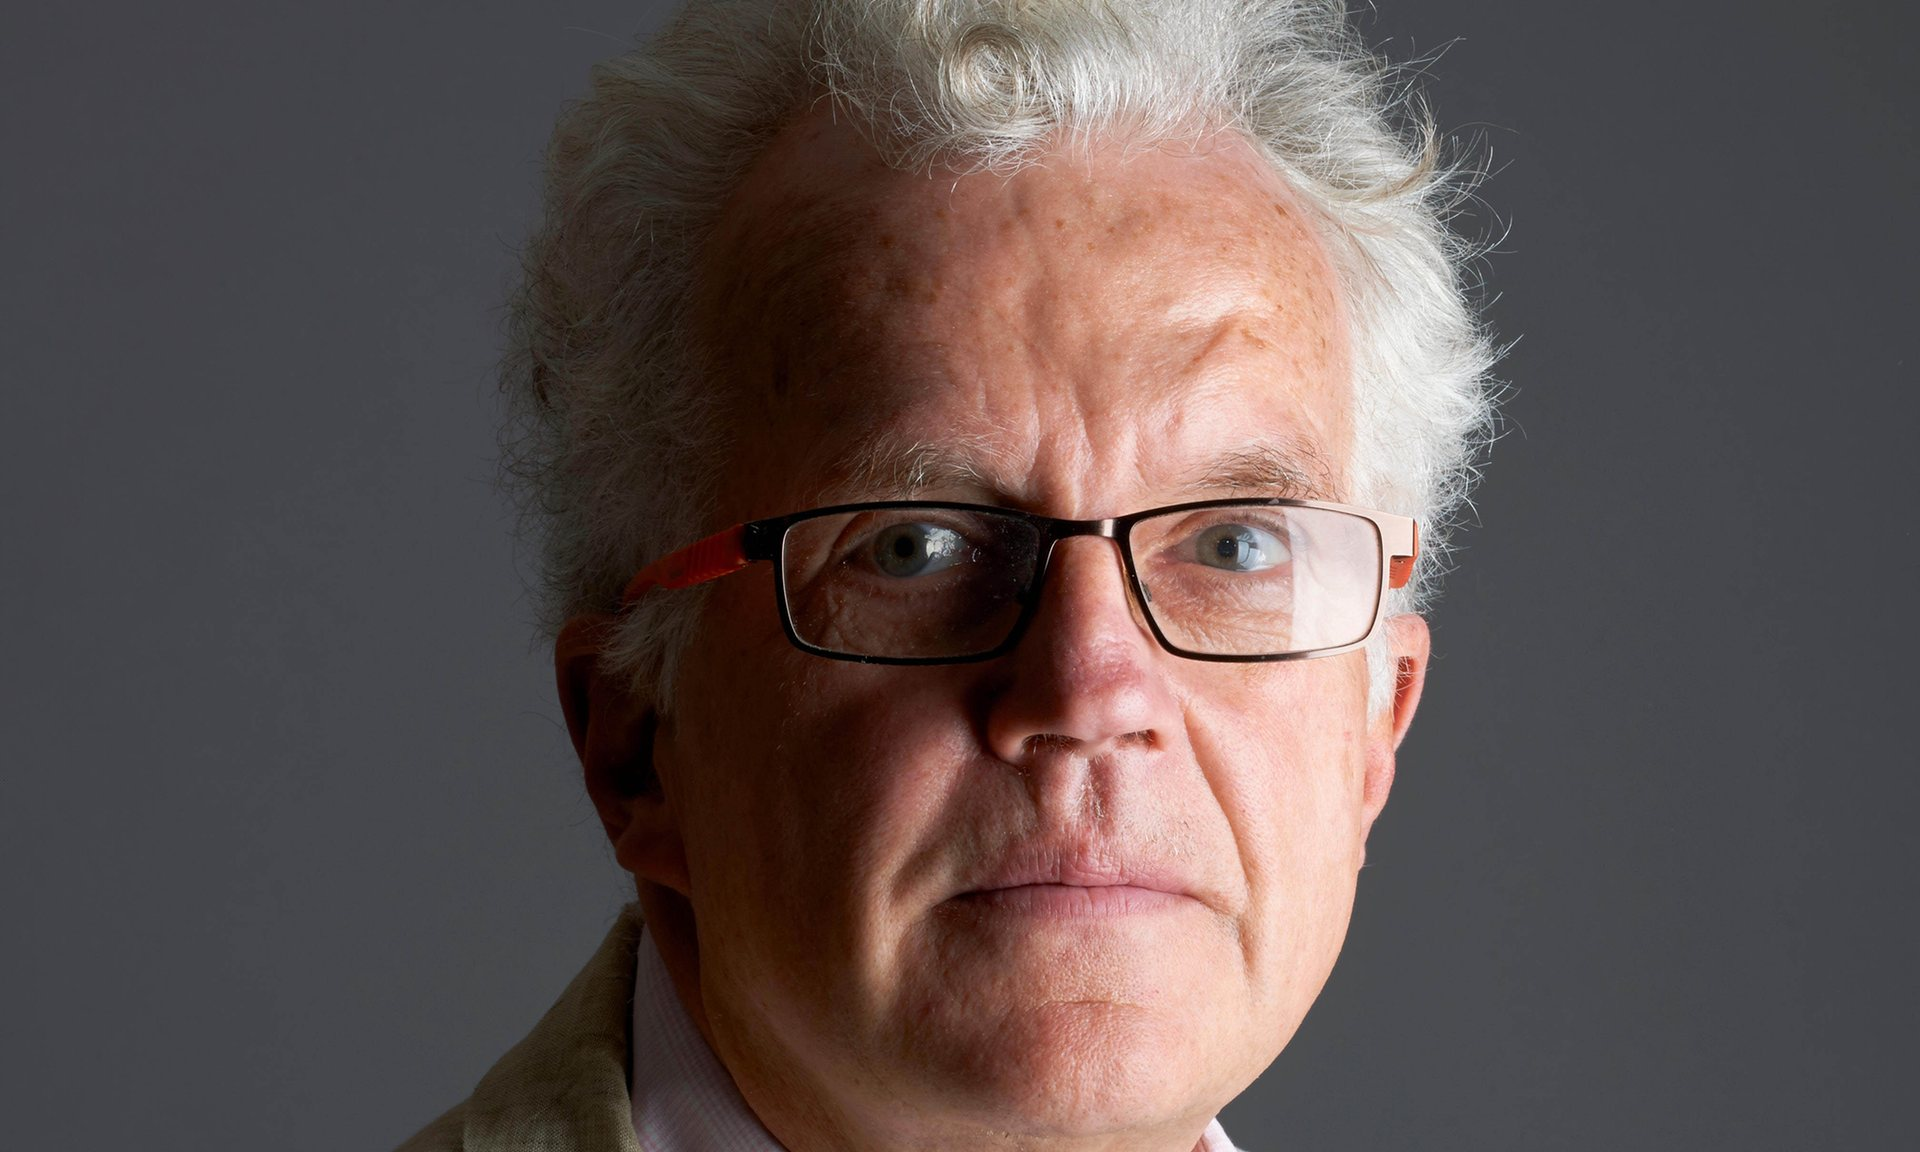 labour-has-decided-to-field-wolmar-against-goldsmith-despite-facing-pressure-not-to-in-order-to-help-the-lib-dems-win-the-seat-photograph-neil-spencealamy-stock-photo